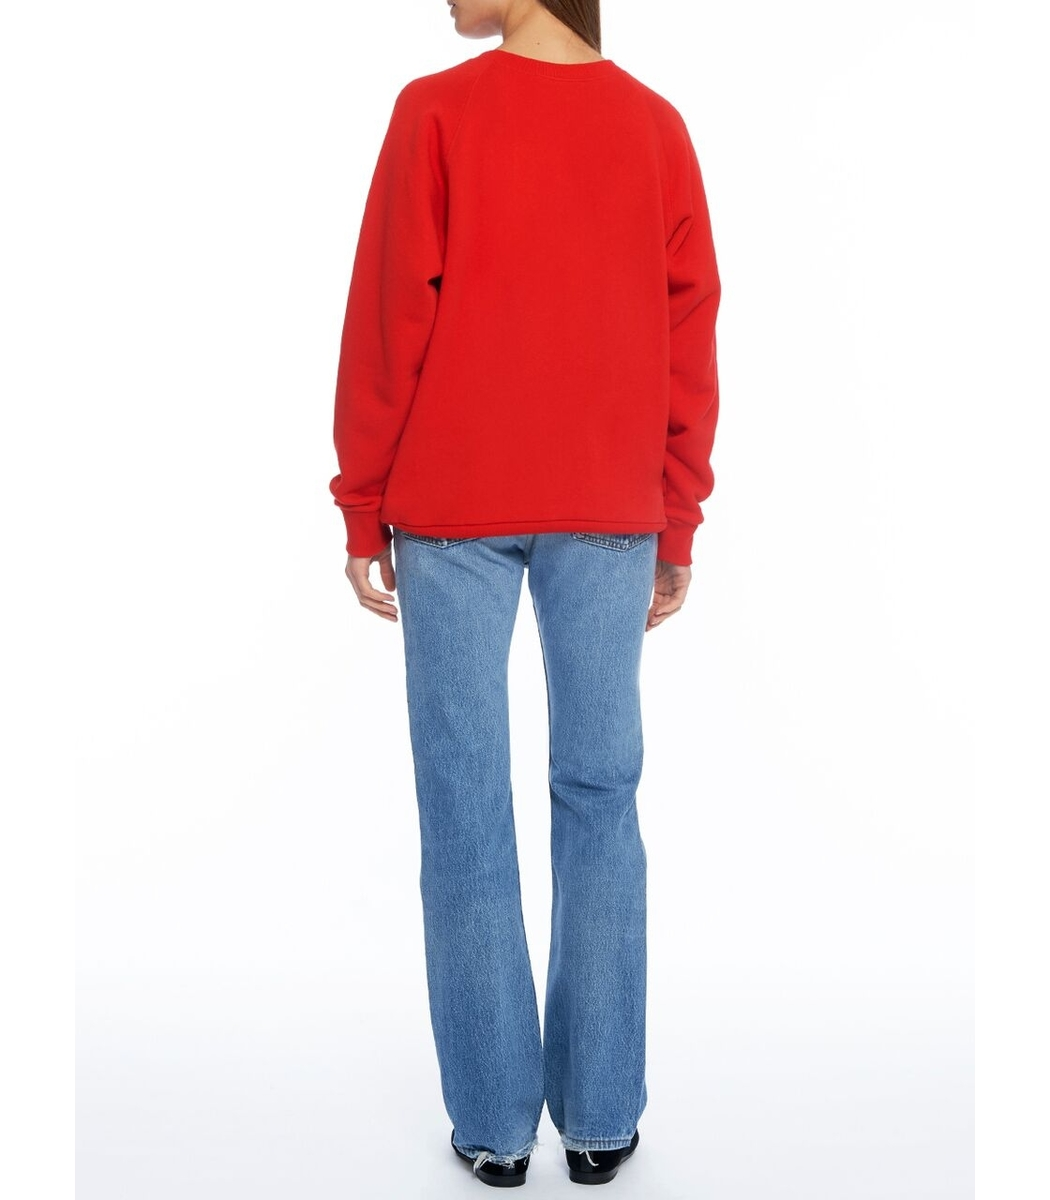 Gucci UFO Embroidered Sweatshirt - Red Crew Neck Long Sleeve ...